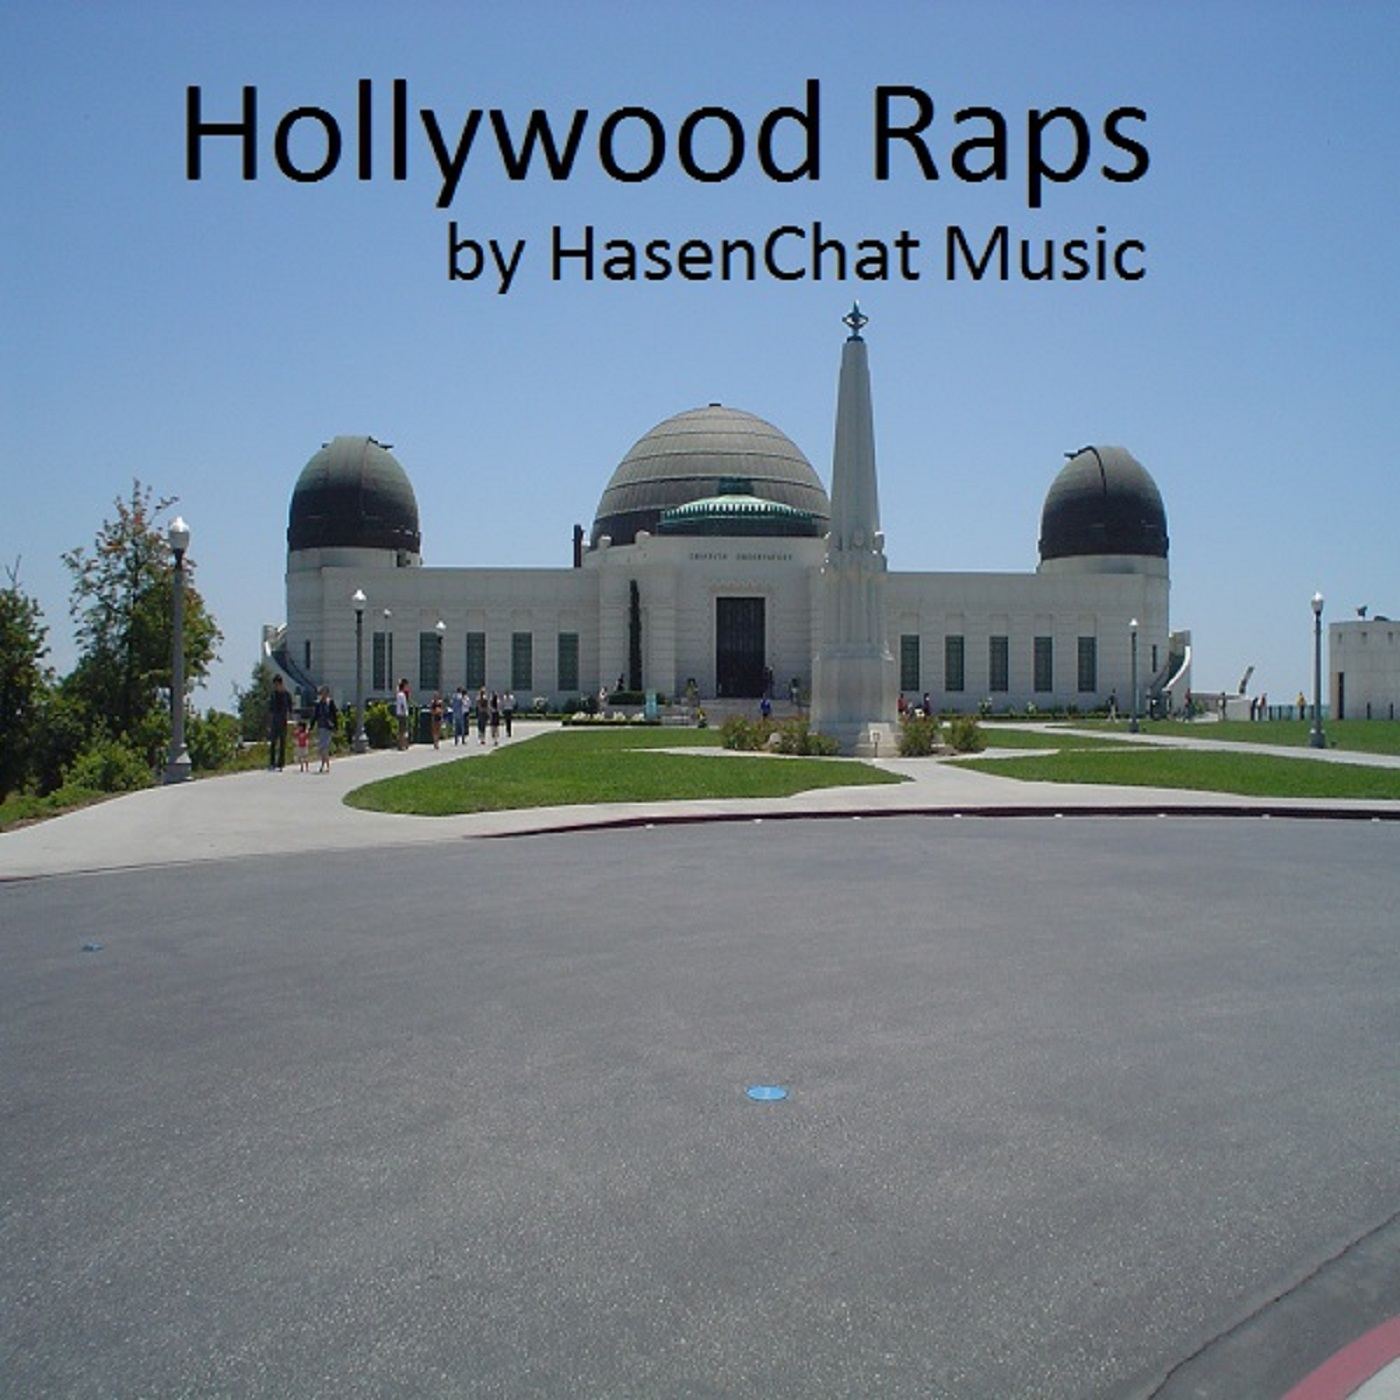 HasenChat Music - Hollywood Raps 1